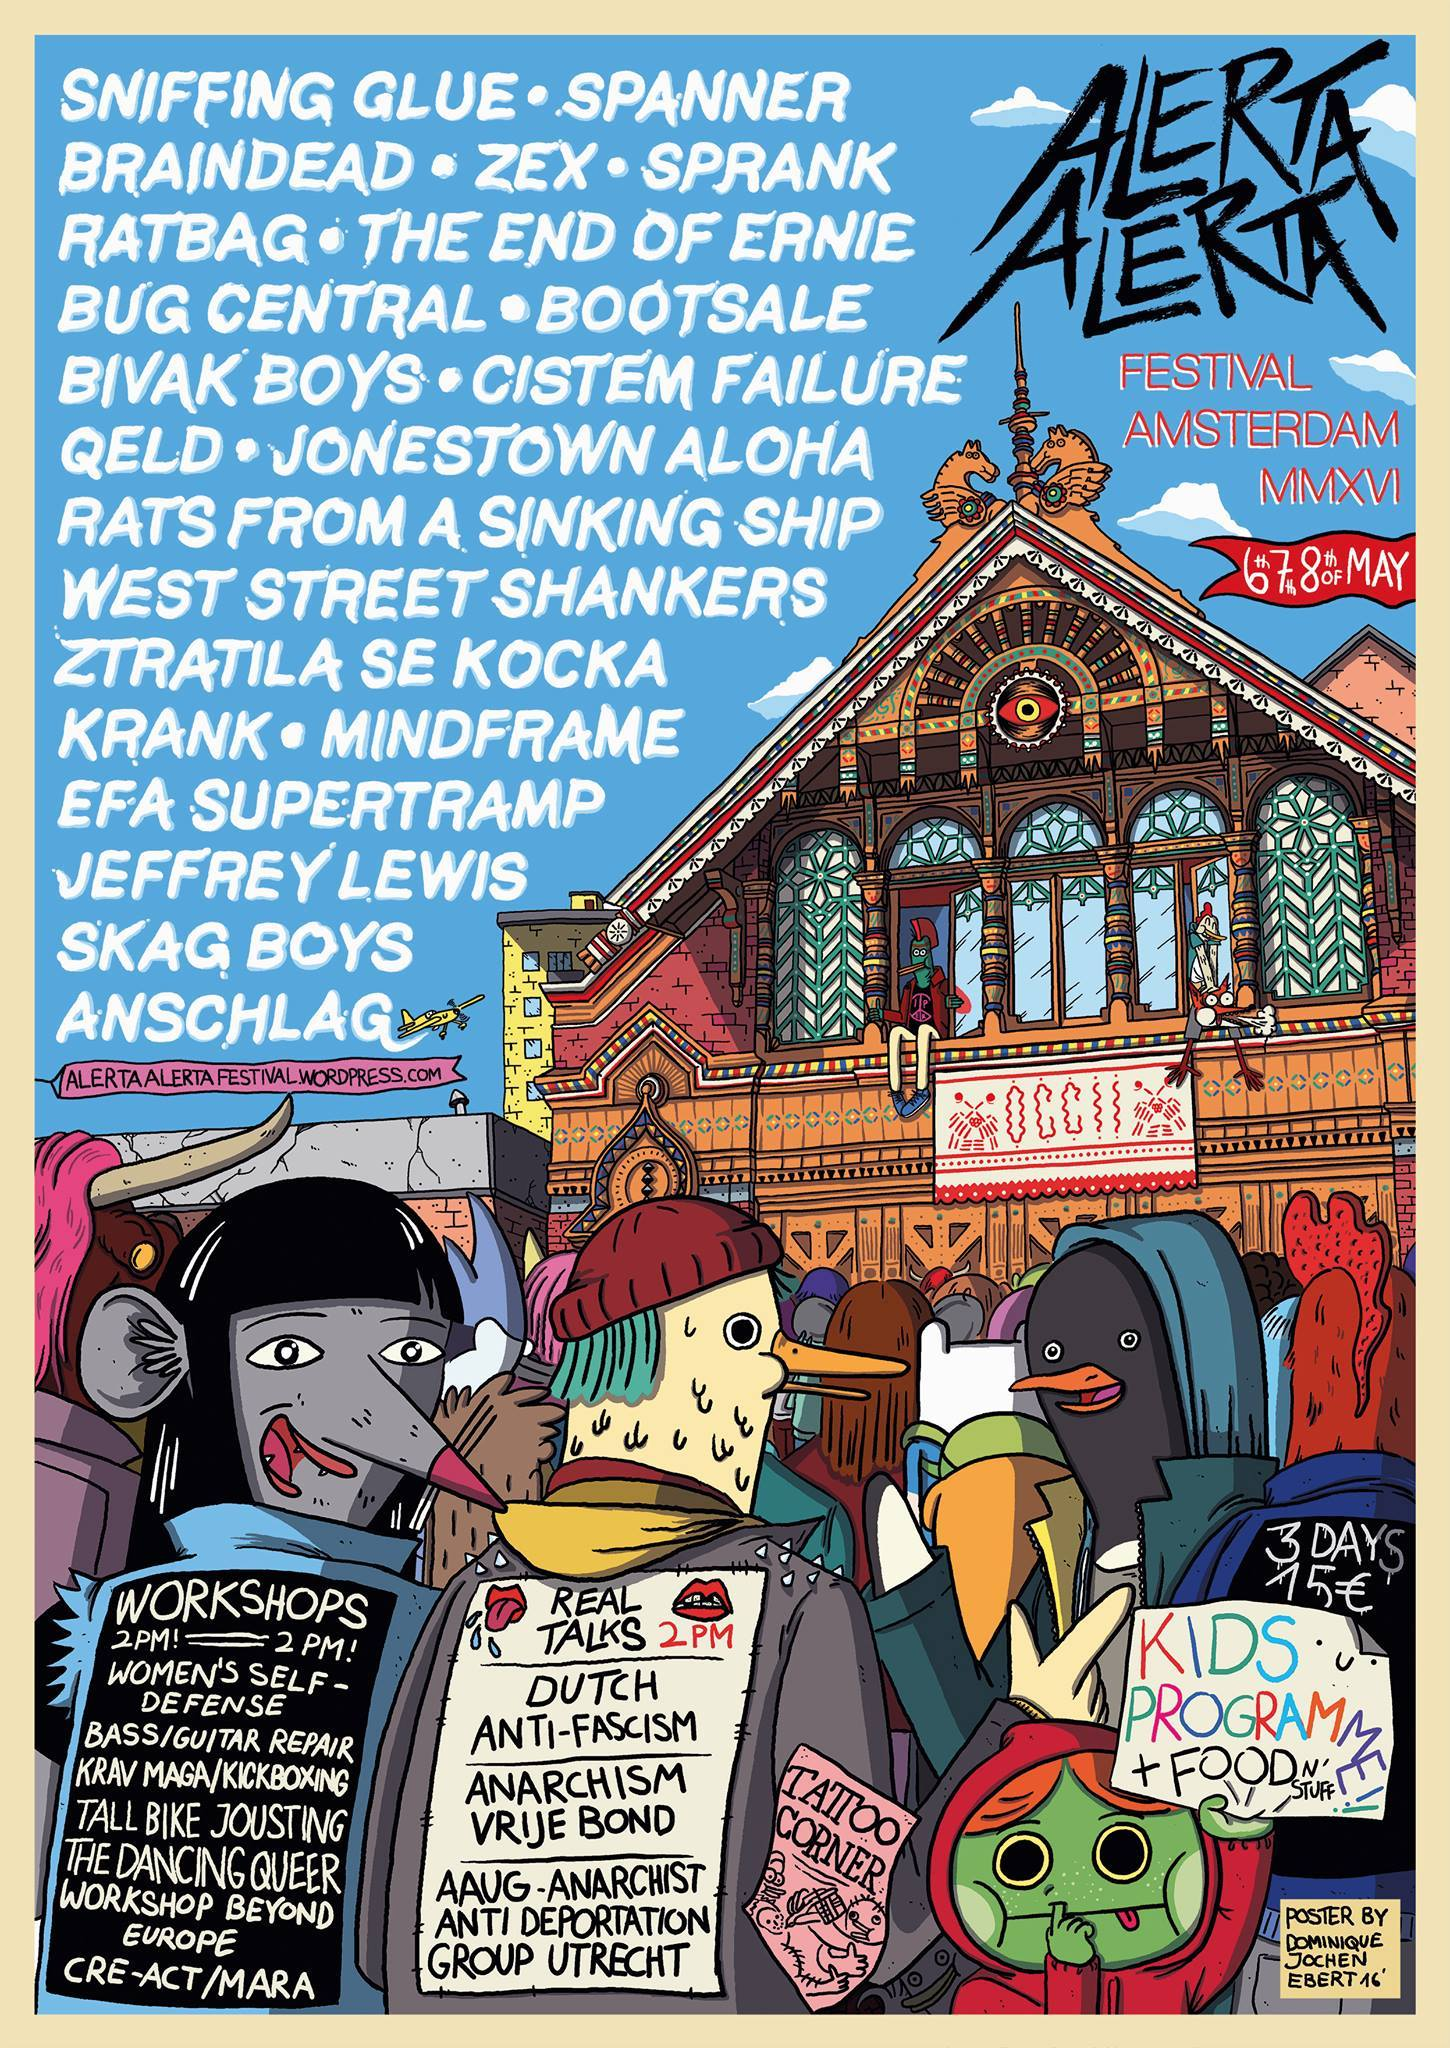 Alerta Alerta Festival 2016 -w/ SNIFFING GLUE (DE) + EFA SUPERTRAMP (UK) + SPANNER (UK) + BRAINDEAD (DE) + SPRANK (NL) + MINDFRAME (UK) + ZEX (CAN) +  JEFFREY LEWIS & LOS BOLTS (US) +  JONESTOWN ALOHA + QELD (UK) + BUG CENTRAL (UK) + KRANK (DE) + ANSCHLAG (DE) + BIVAK BOYS + CISTEM FAILURE + THE END OF ERNE (BE) + RATS FROM A SINKING SHIP (UK) + RATBAG (UK)